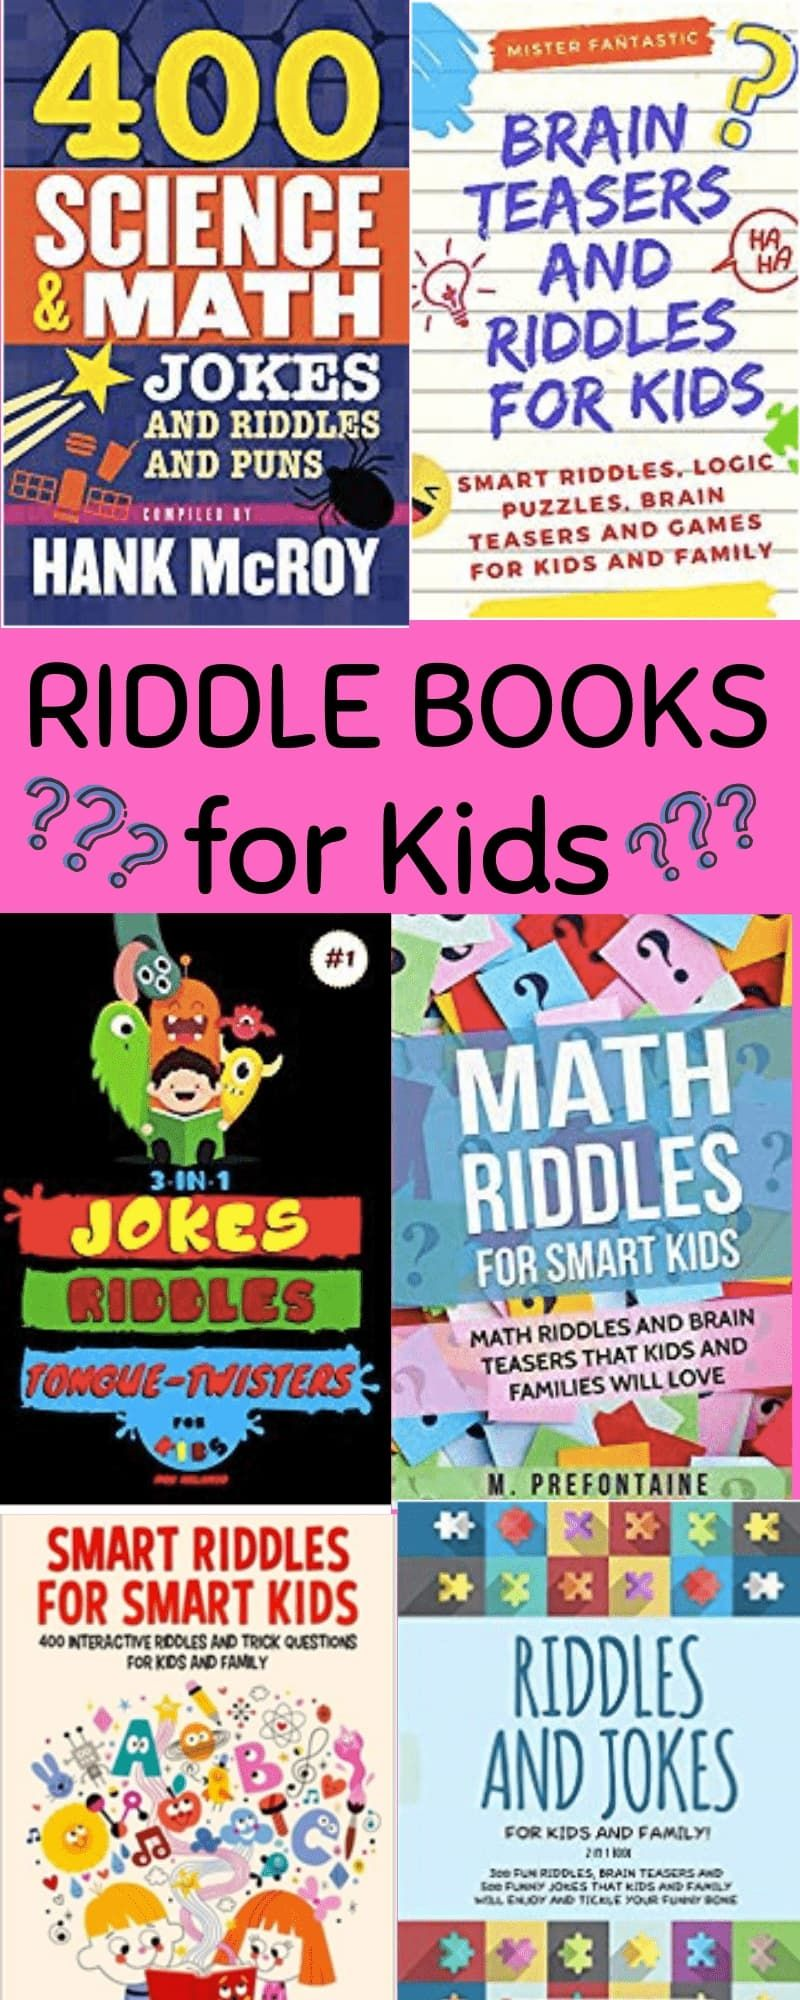 Find the best riddles for kids in these children's riddle